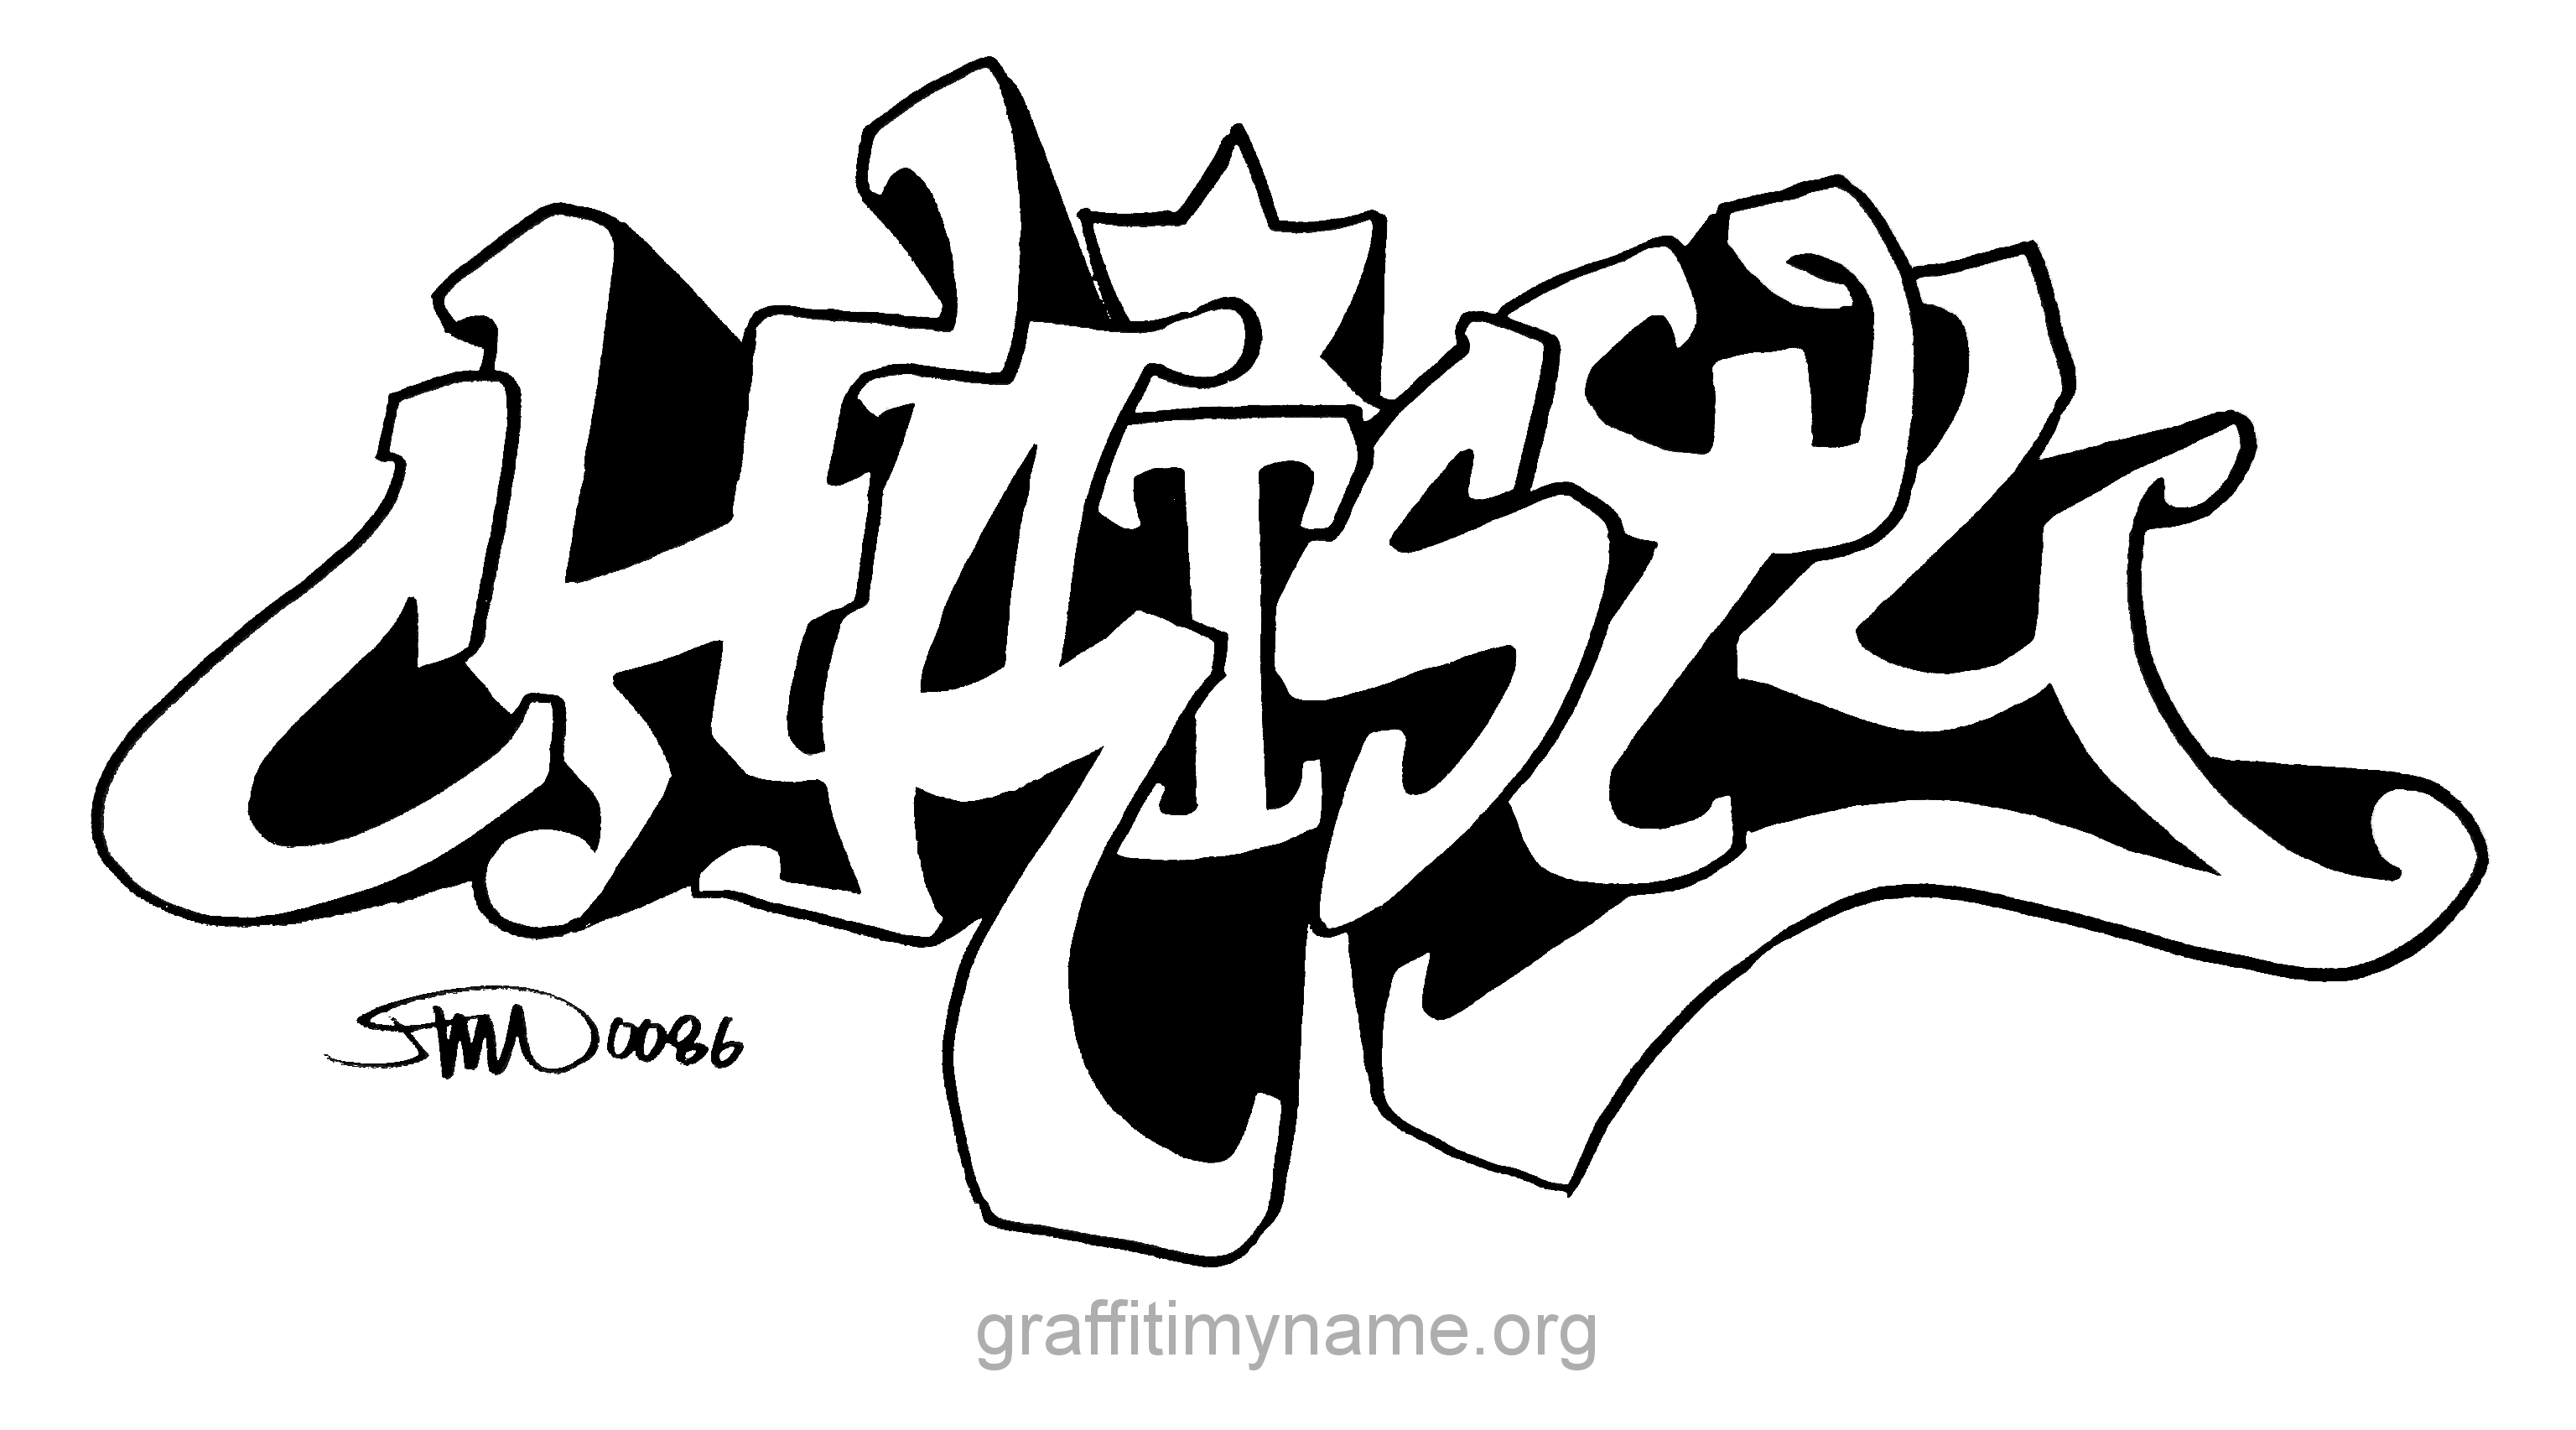 Christy In Graffiti